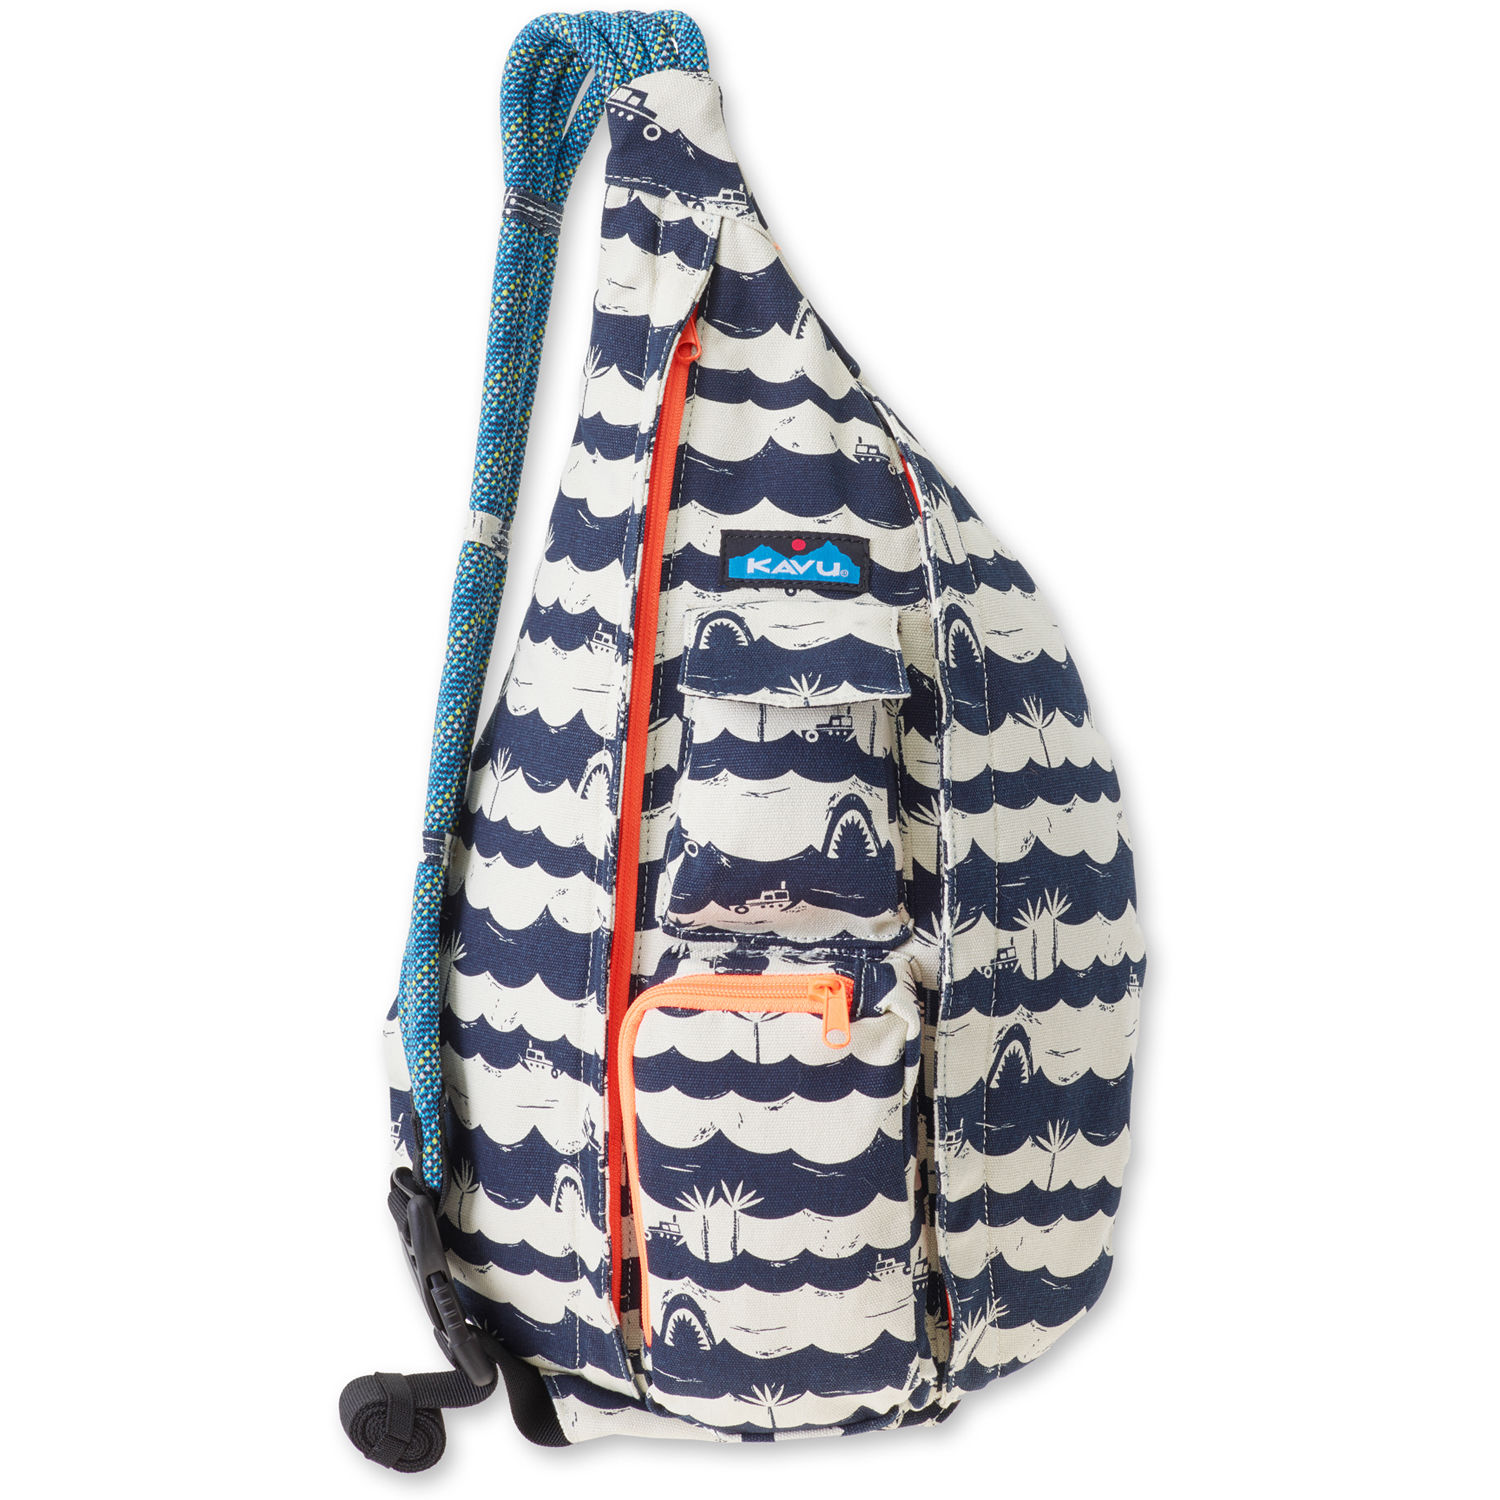 Kavu Rope Bag Shark Bait